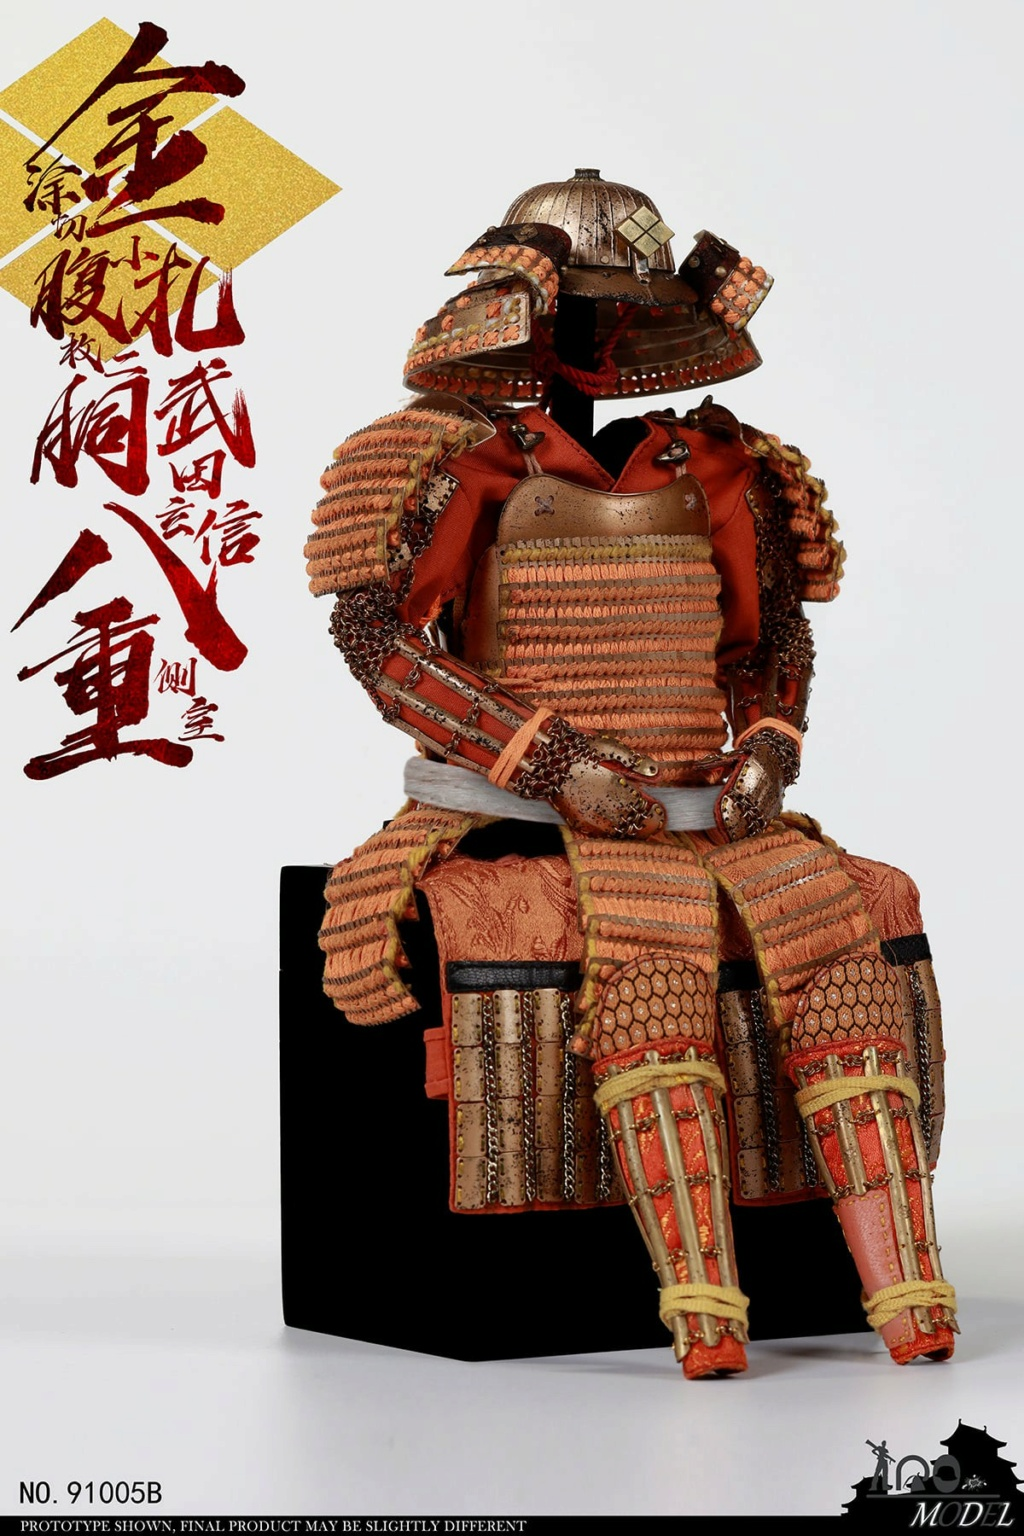 IQOModel - NEW PRODUCT: IQOMODEL: 1/6 [100% full copper] Takeda Shingen's side room with eight heavy gold-coated cuts and two small pieces of carcass NO.91005A/B  16302712